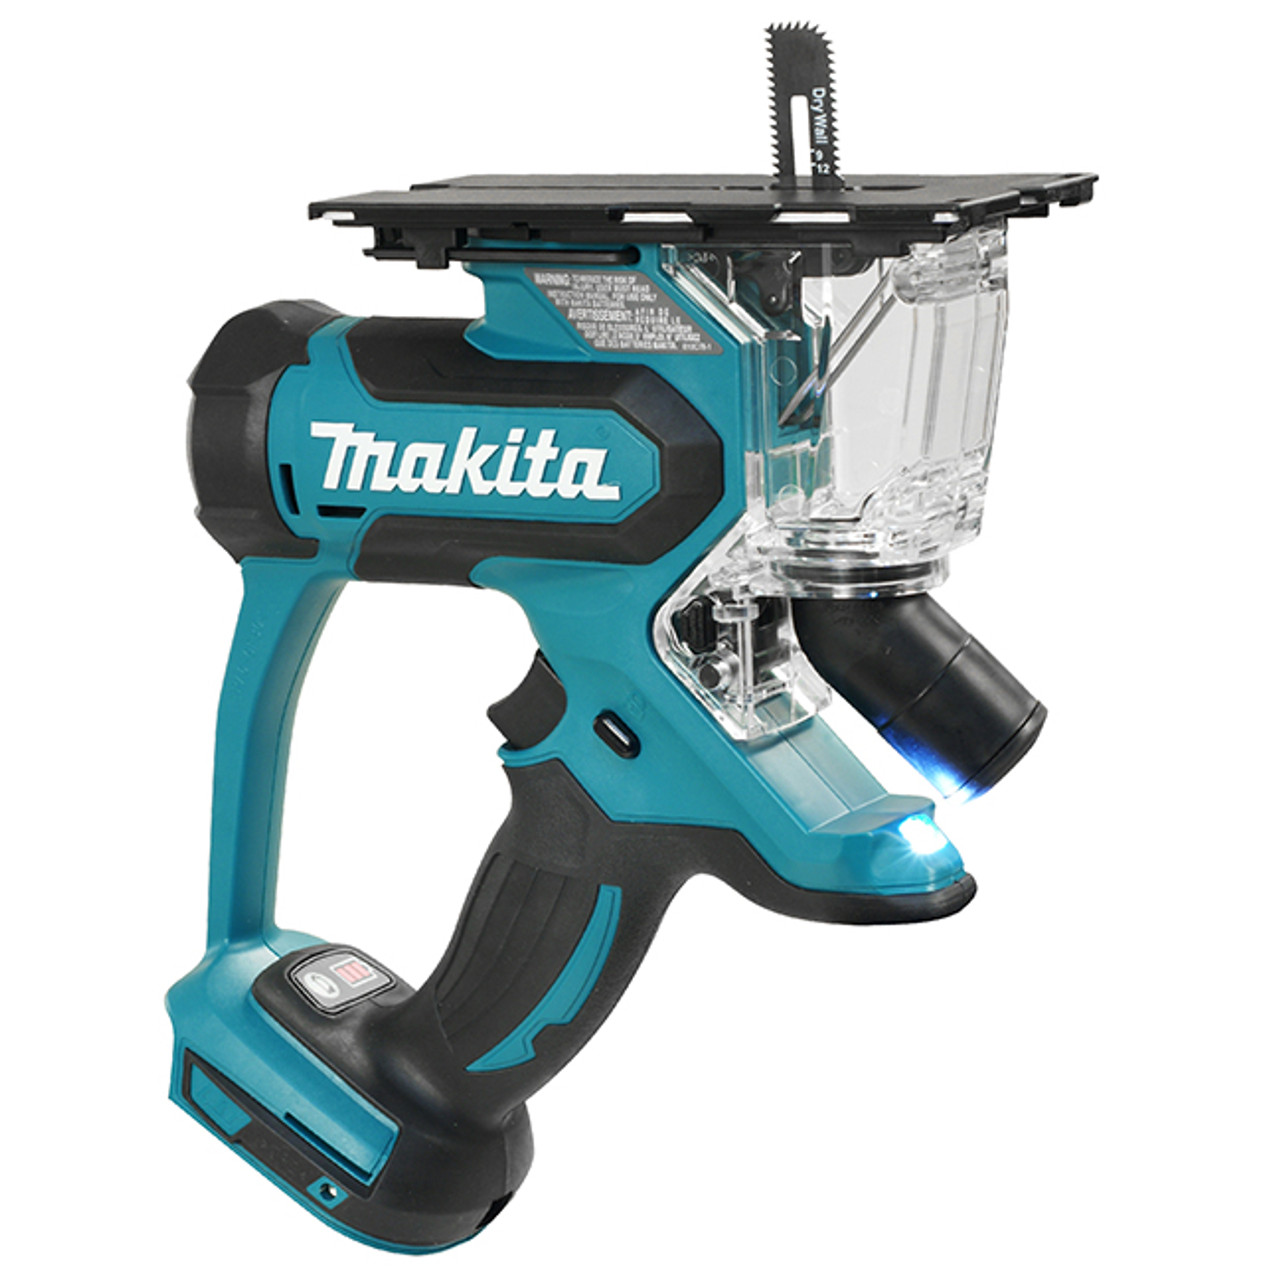 Makita Dsd180z Cordless Drywall Cutter Atlas Machinery Ltd